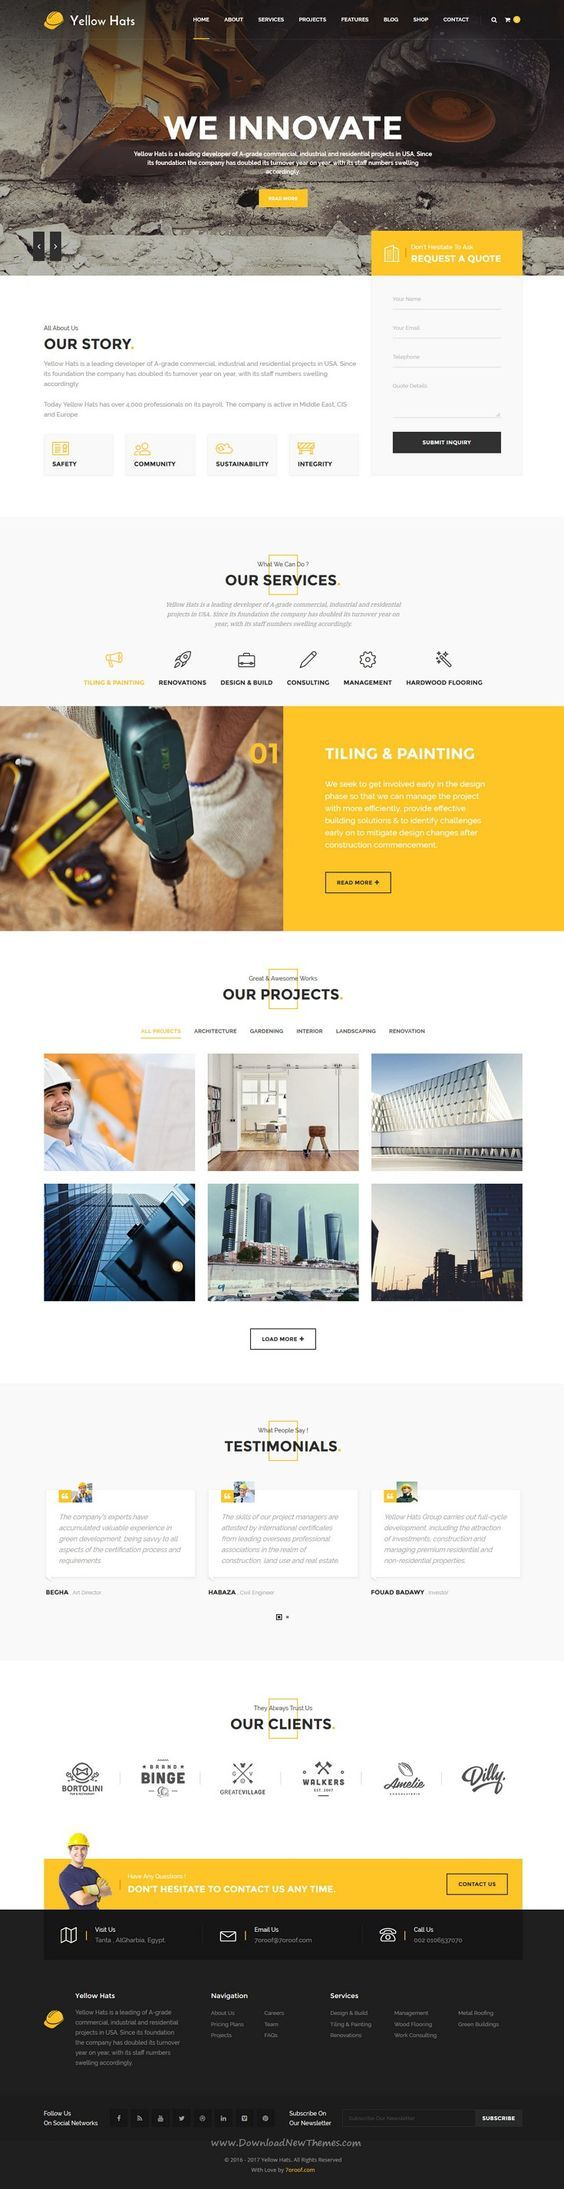 Yellow Hats is a stunning, professional and flexible WordPress #Theme based on Strong researches into the field of business, #Construction and Handyman Business #website. Download Now!: